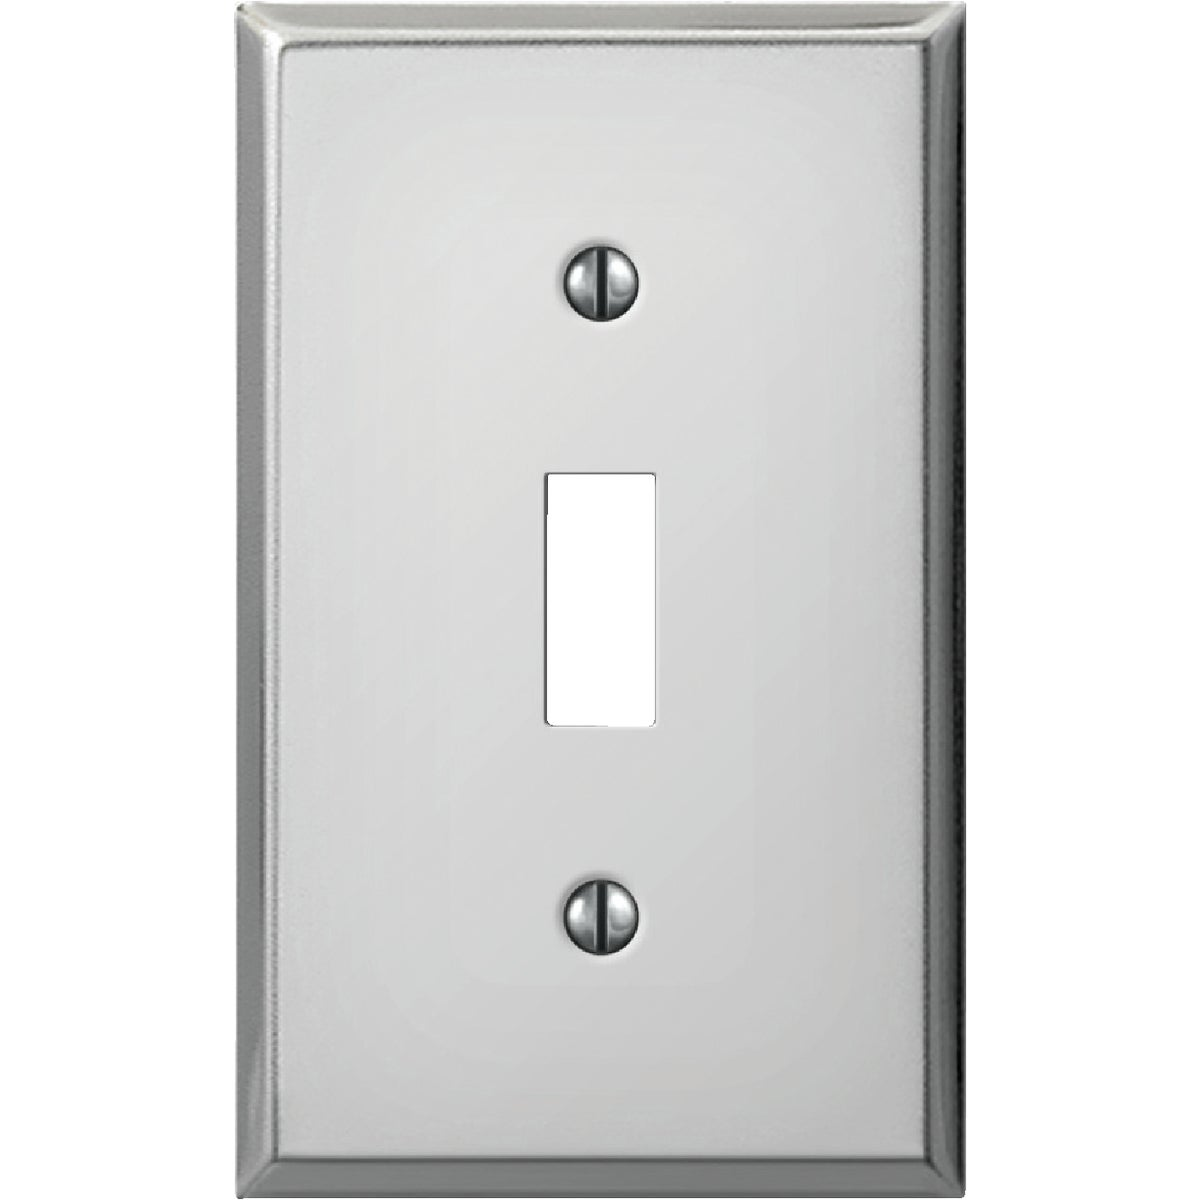 CHR SWITCH WALL PLATE - 8CS101 by Jackson Deerfield Mf